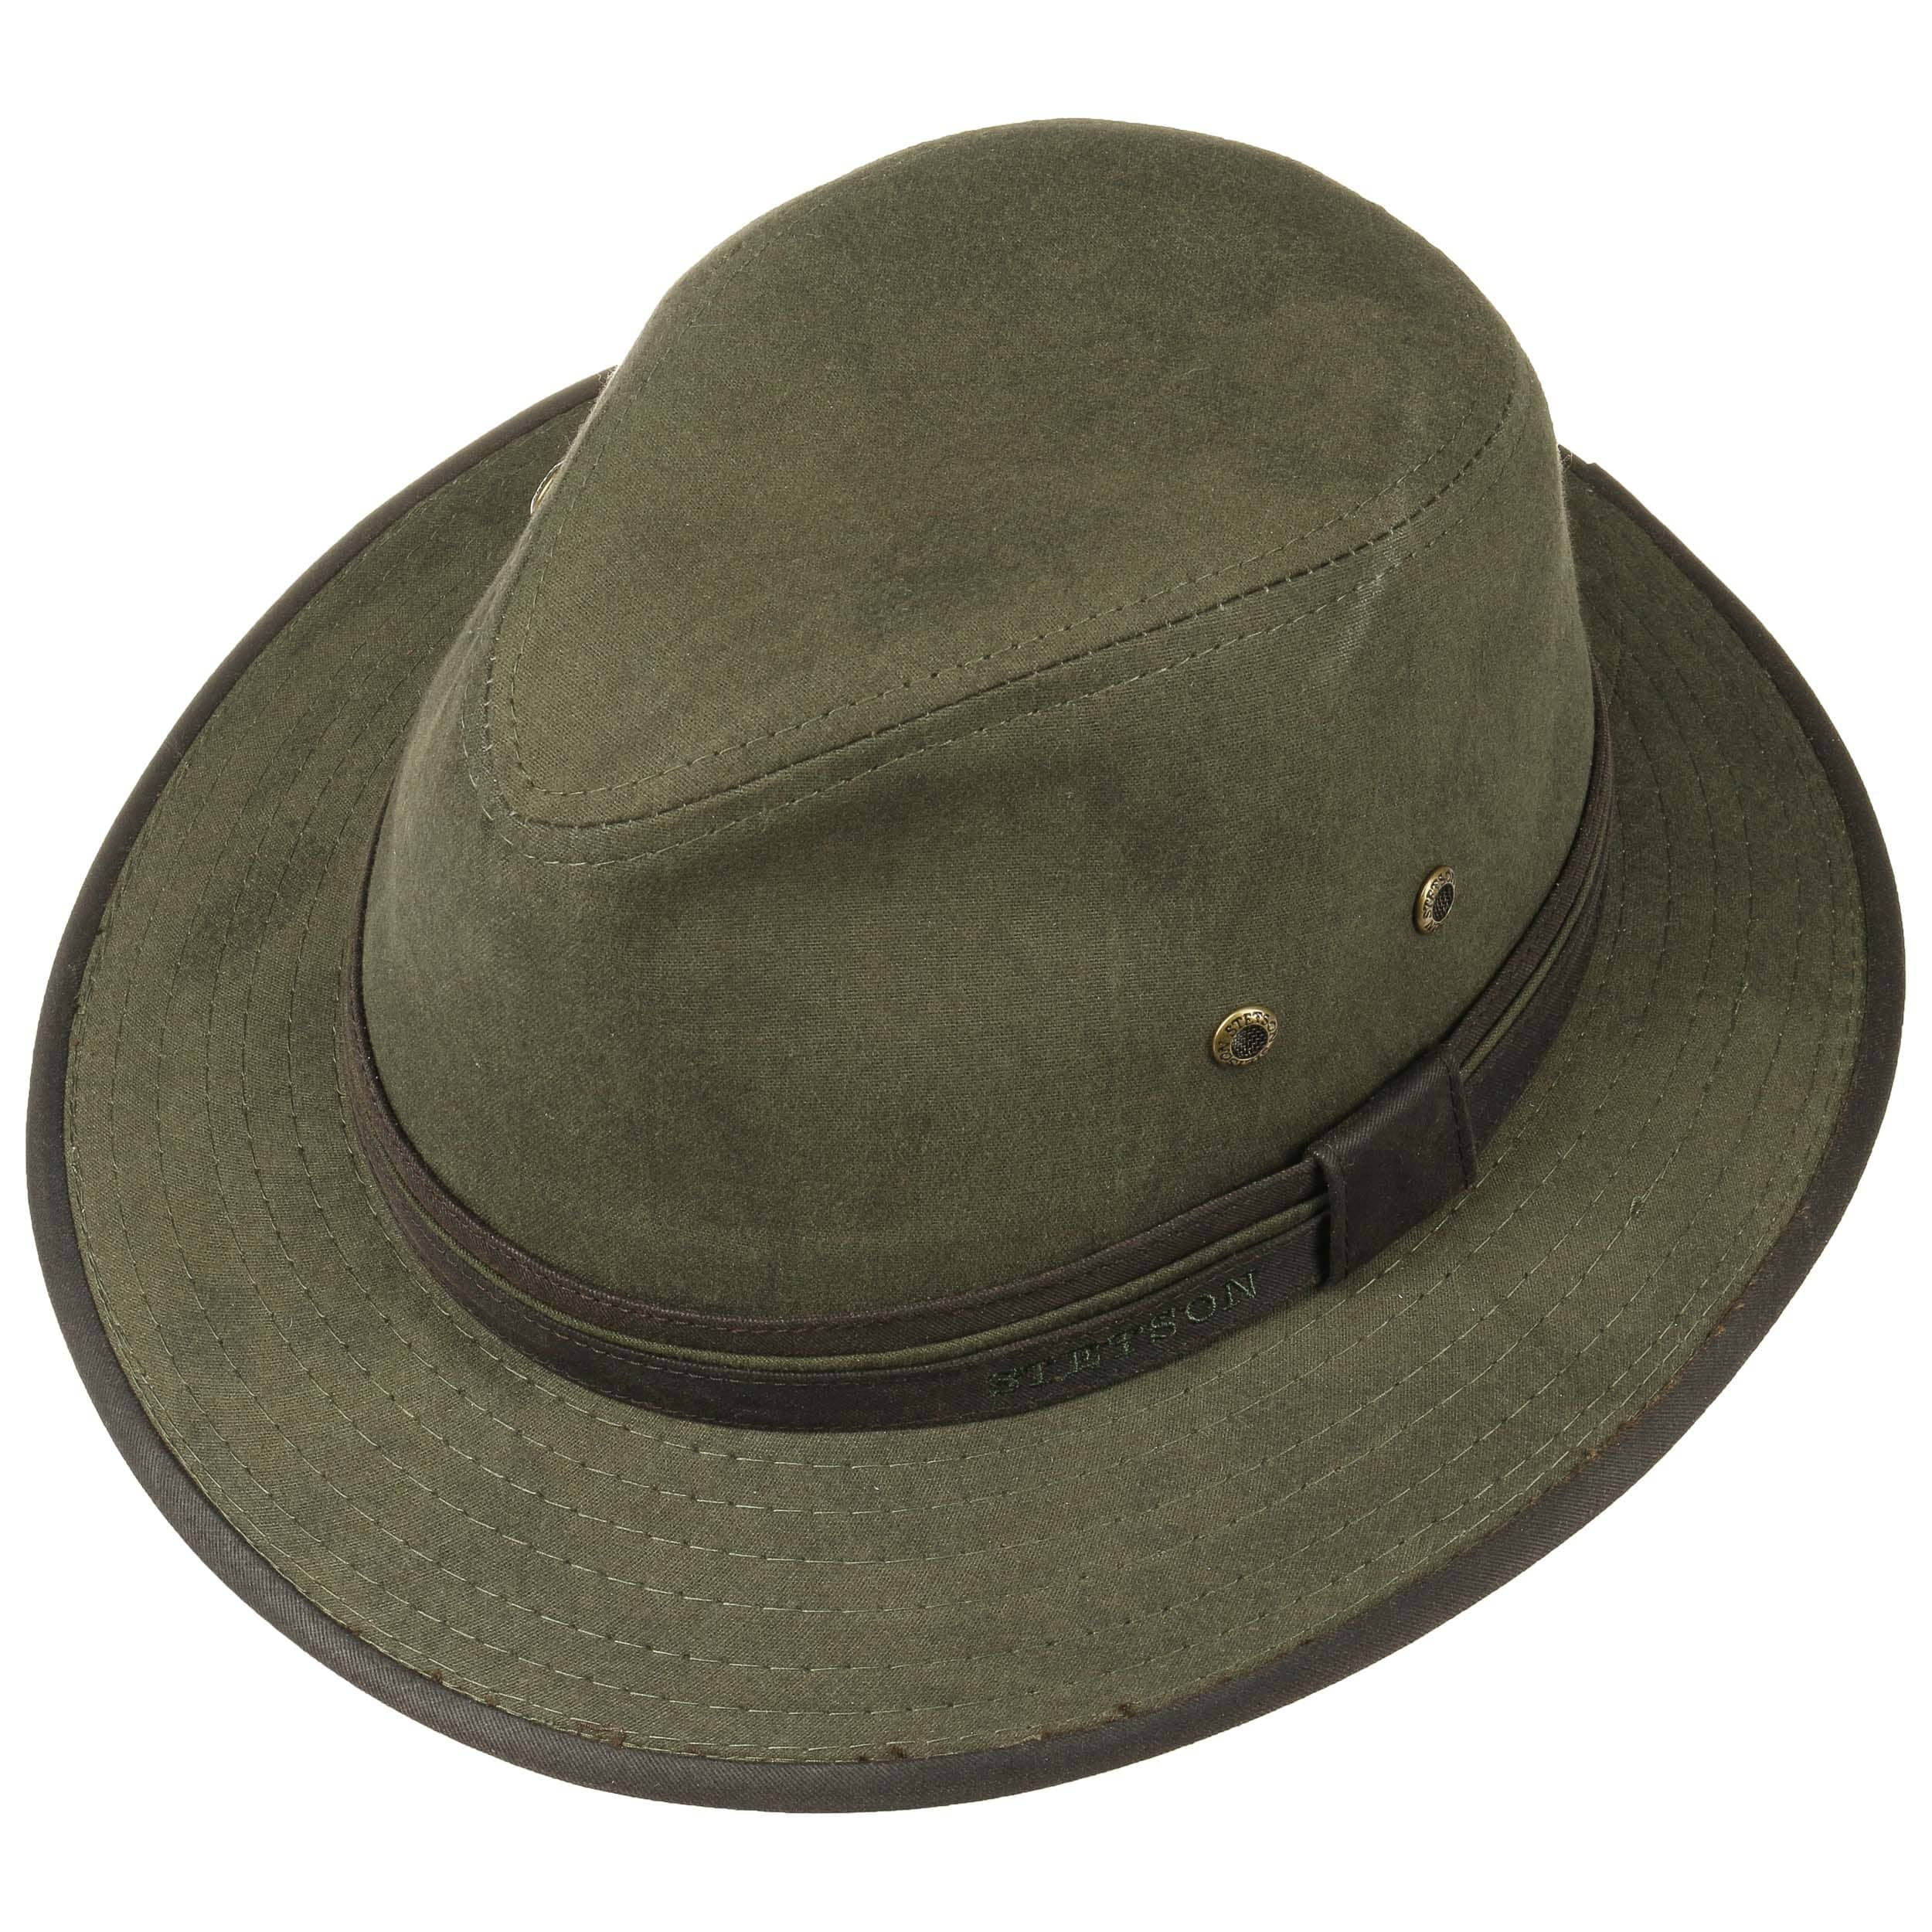 Outlet Fast Delivery Cadosia Cotton Traveller Hat by Stetson Sun hats Stetson Countdown Package Sale Online Buy Cheap Price pLrSuwb7S